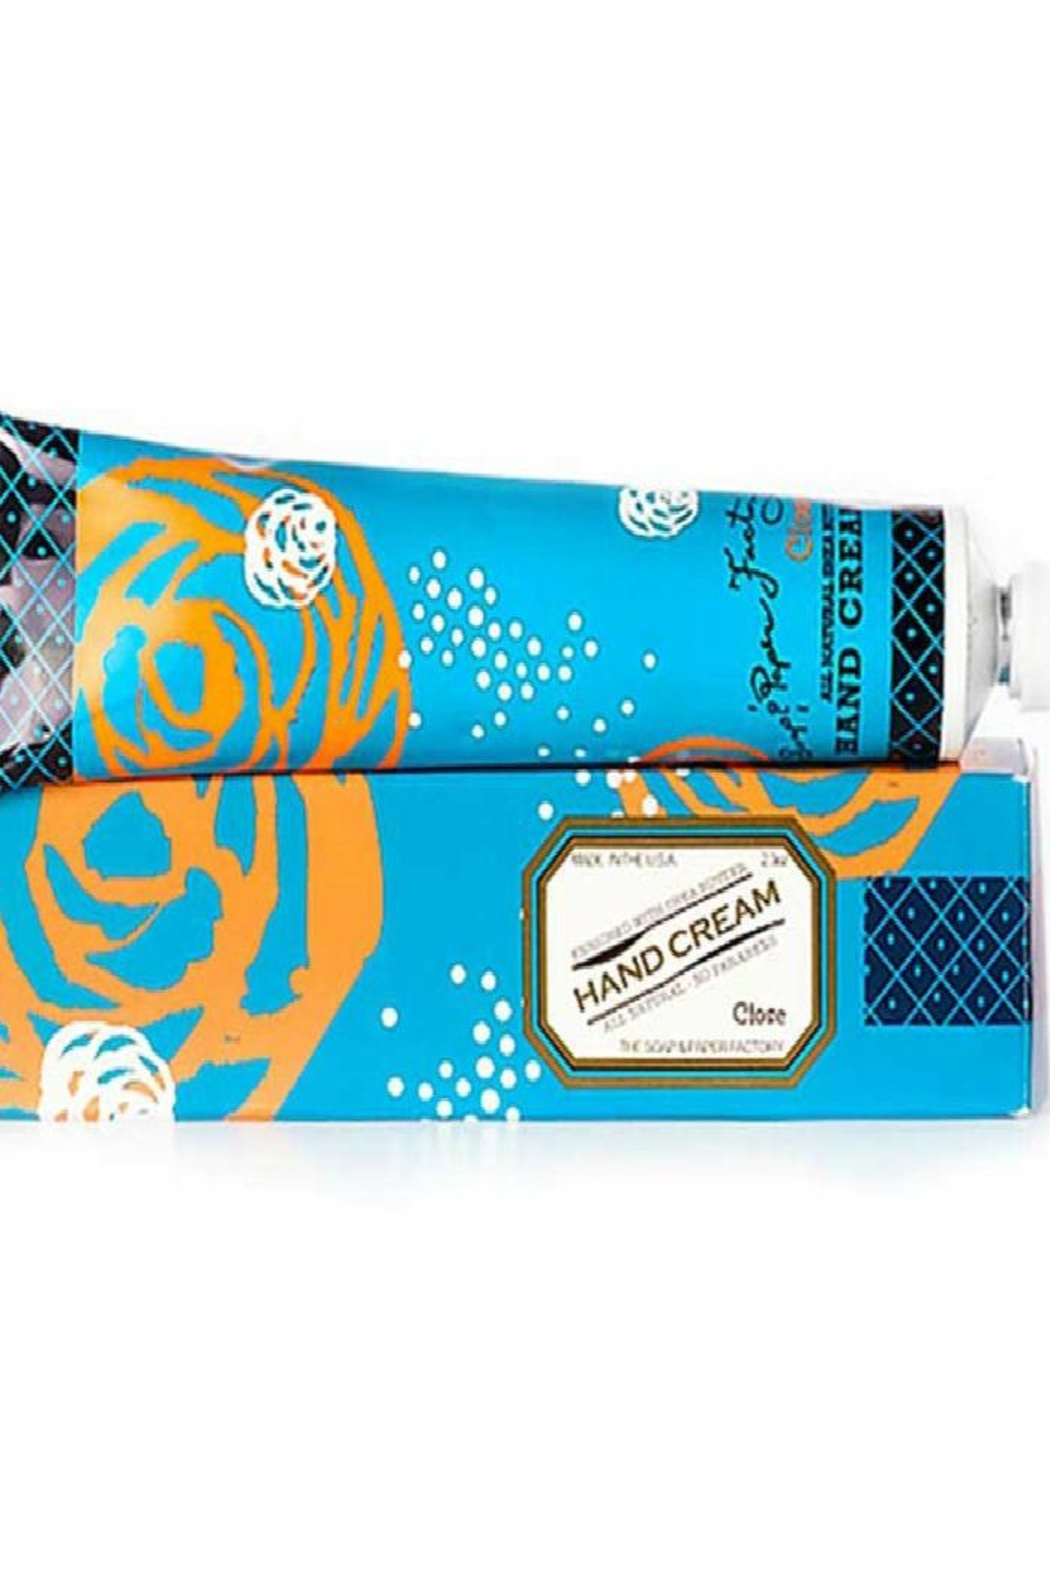 Soap and Paper Factory Close Hand Cream - Main Image